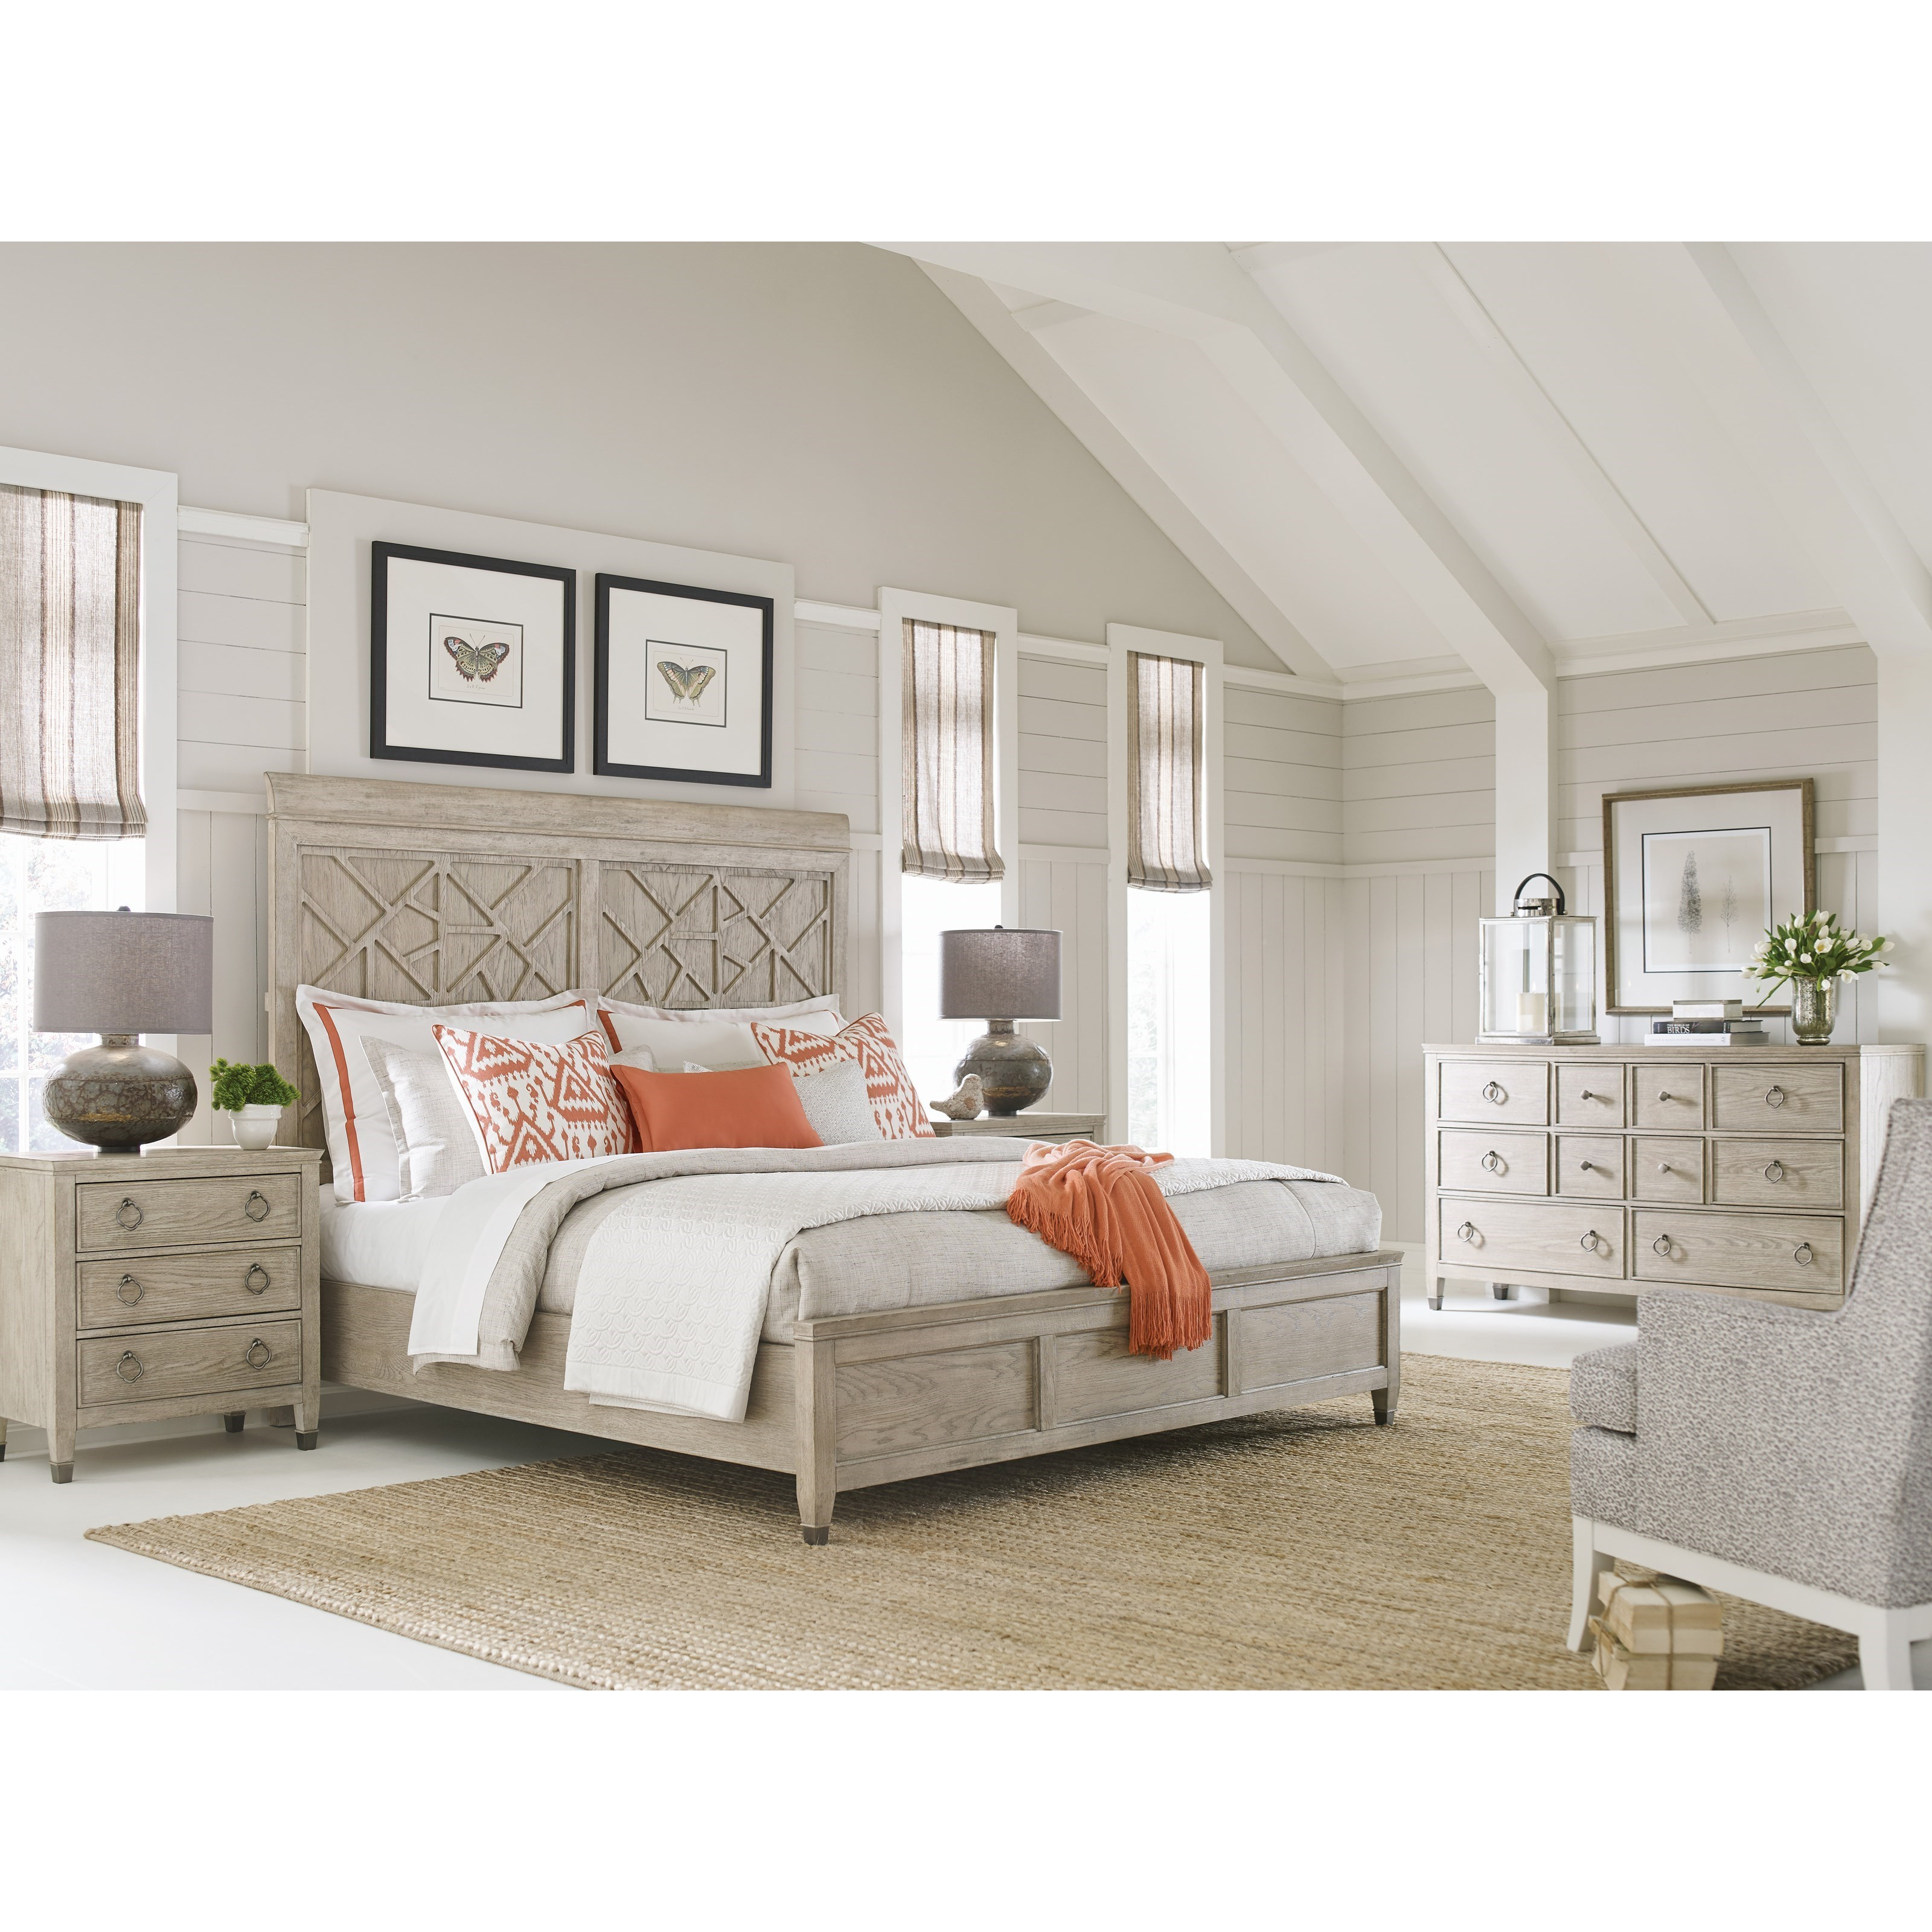 Vista King Bedroom Group by American Drew at Stoney Creek Furniture